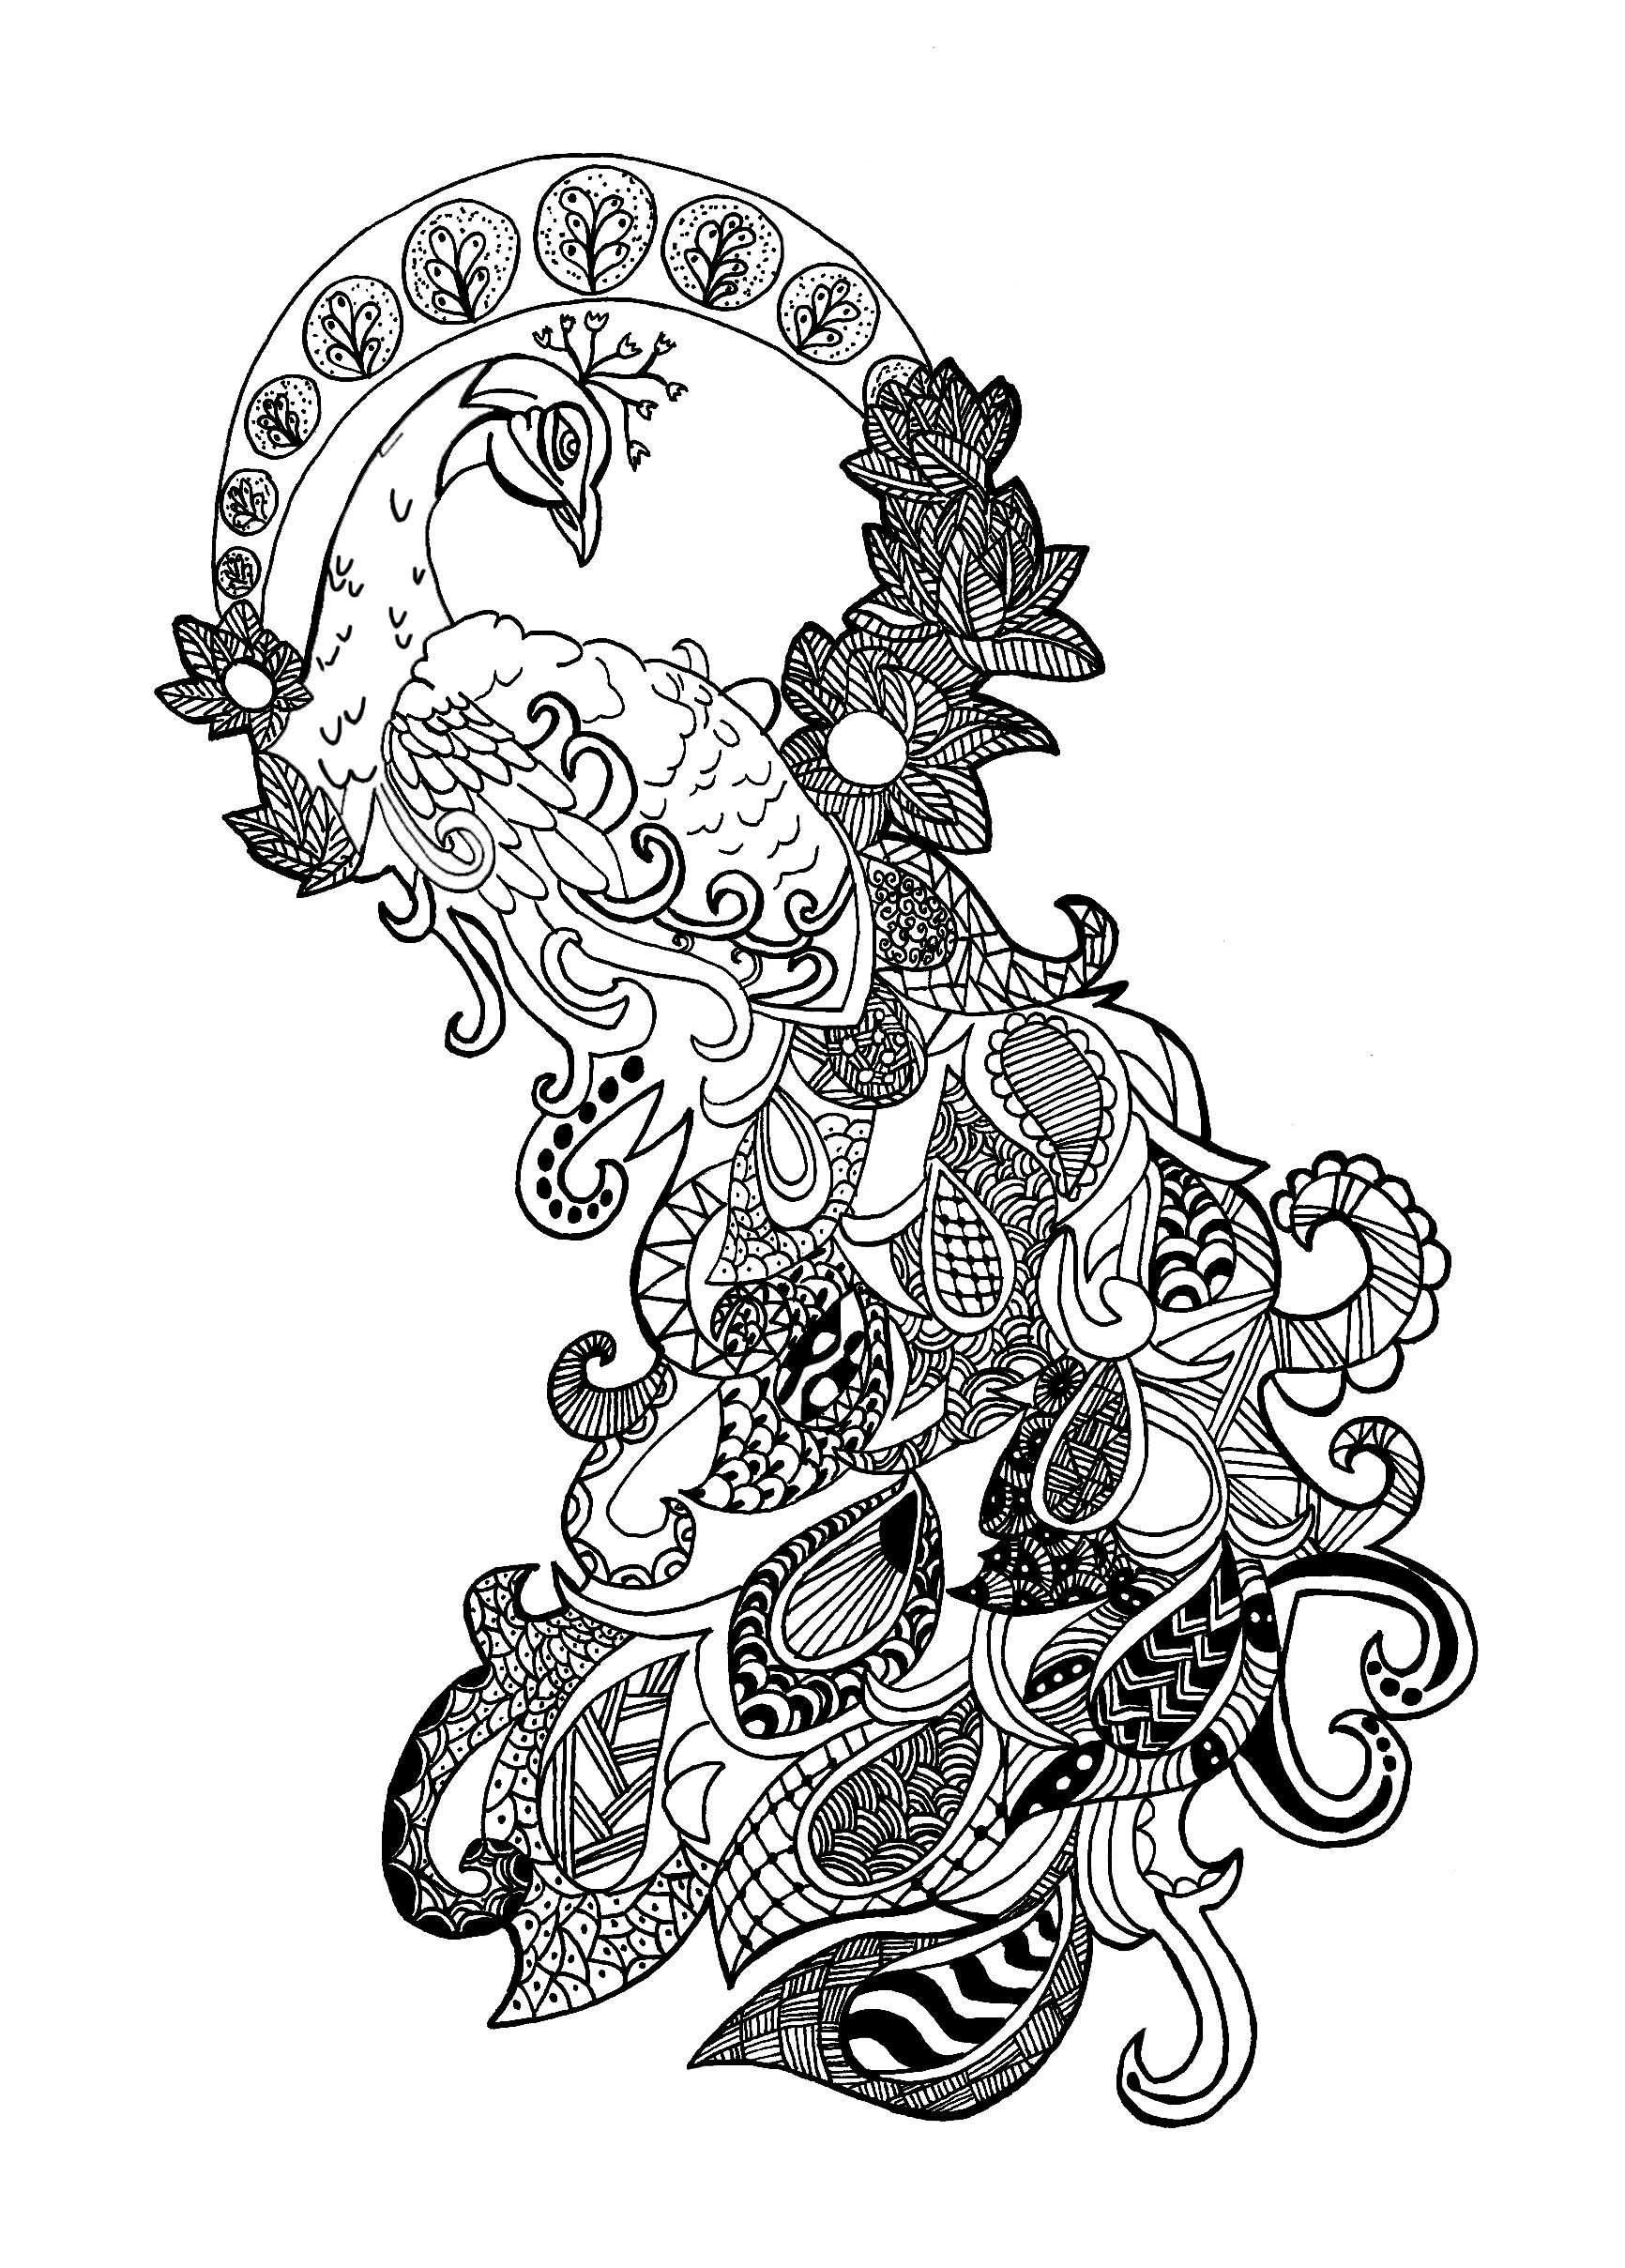 An Amazing Peacock Really Zentangle And Really Hard From The Gallery Zentangleartist Celine Mandala Coloring Pages Animal Coloring Pages Coloring Pages [ 2417 x 1732 Pixel ]